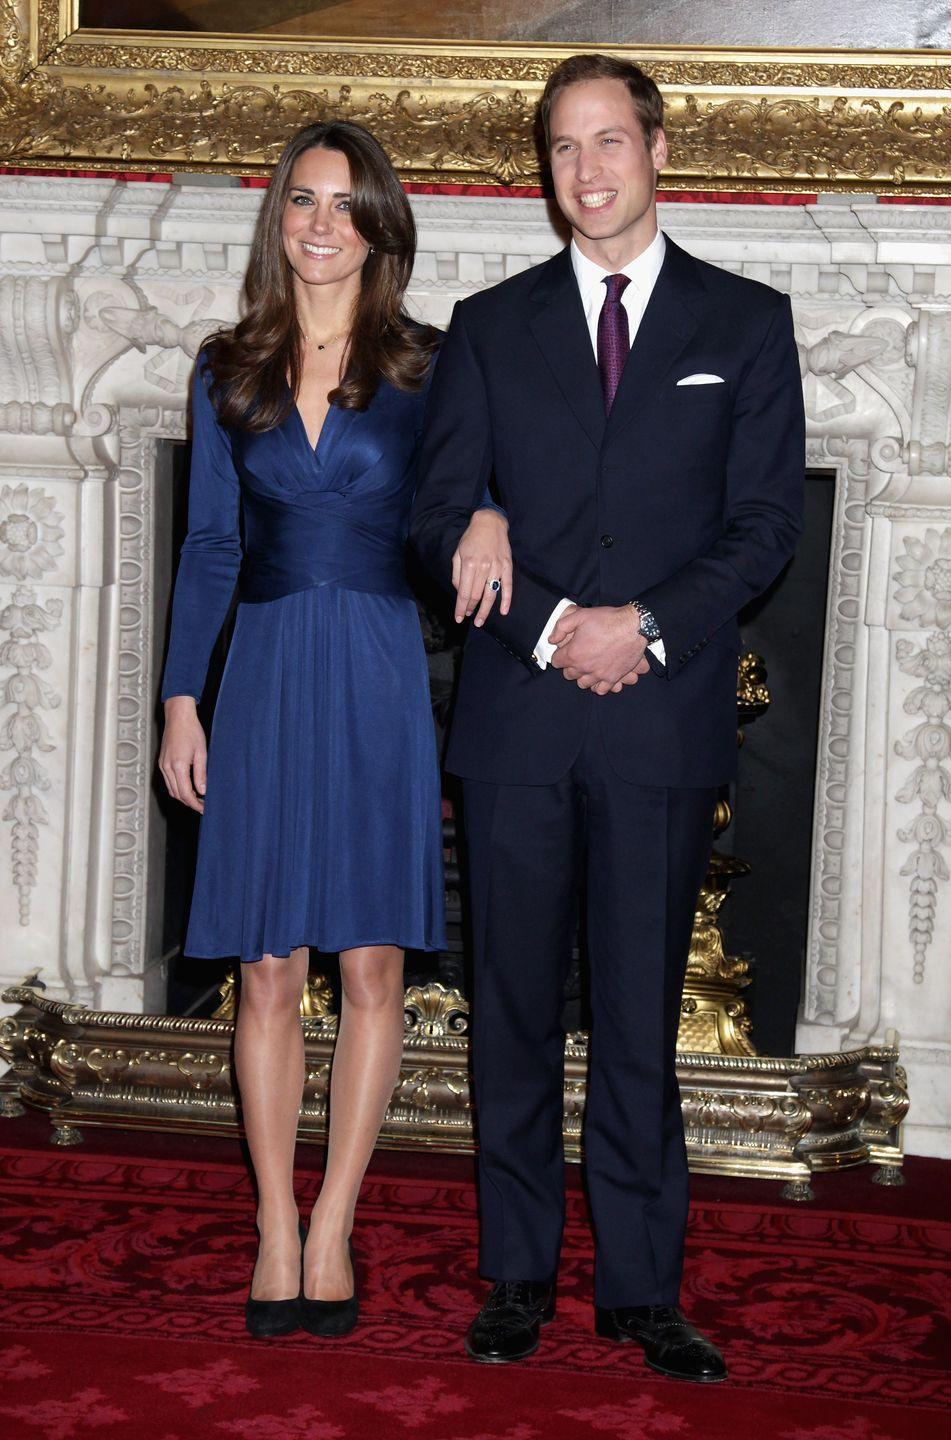 <p>Prince William proposed to his longtime girlfriend, Kate Middleton, while on vacation in Kenya. The couple announced their engagement to the press at St James's Palace in November 2010 and were married in April the following year at Westminster Abbey. </p>